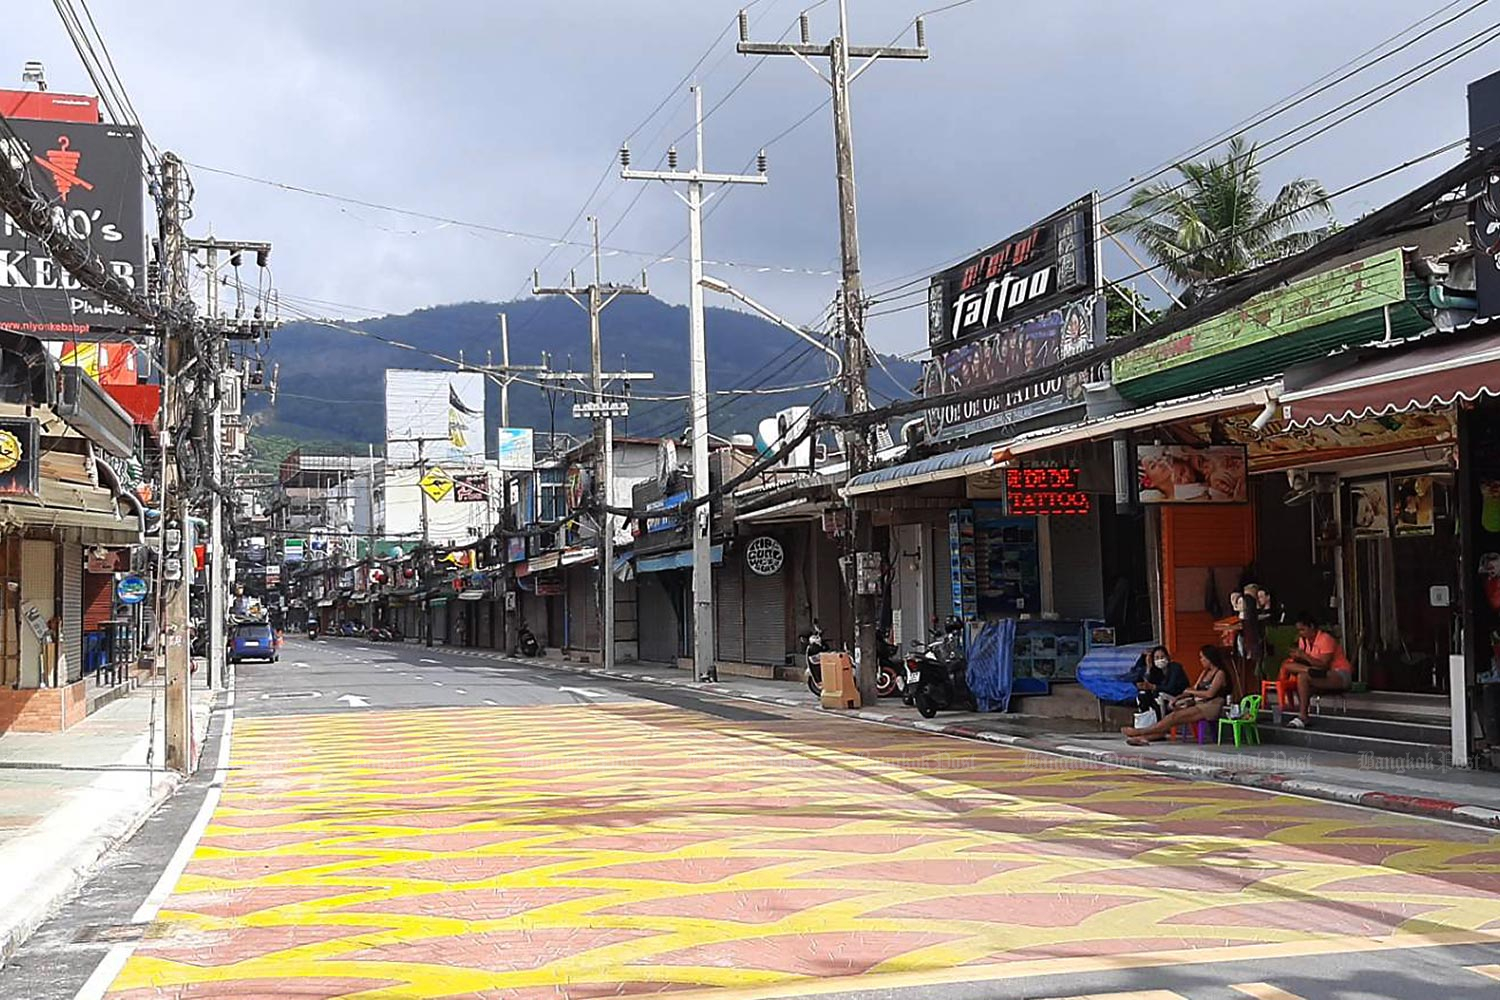 An area near Patong beach in Phuket, which is usually packed with tourists, is almost empty because of the negative impact of the coronavirus. (Bangkok Post file photo)